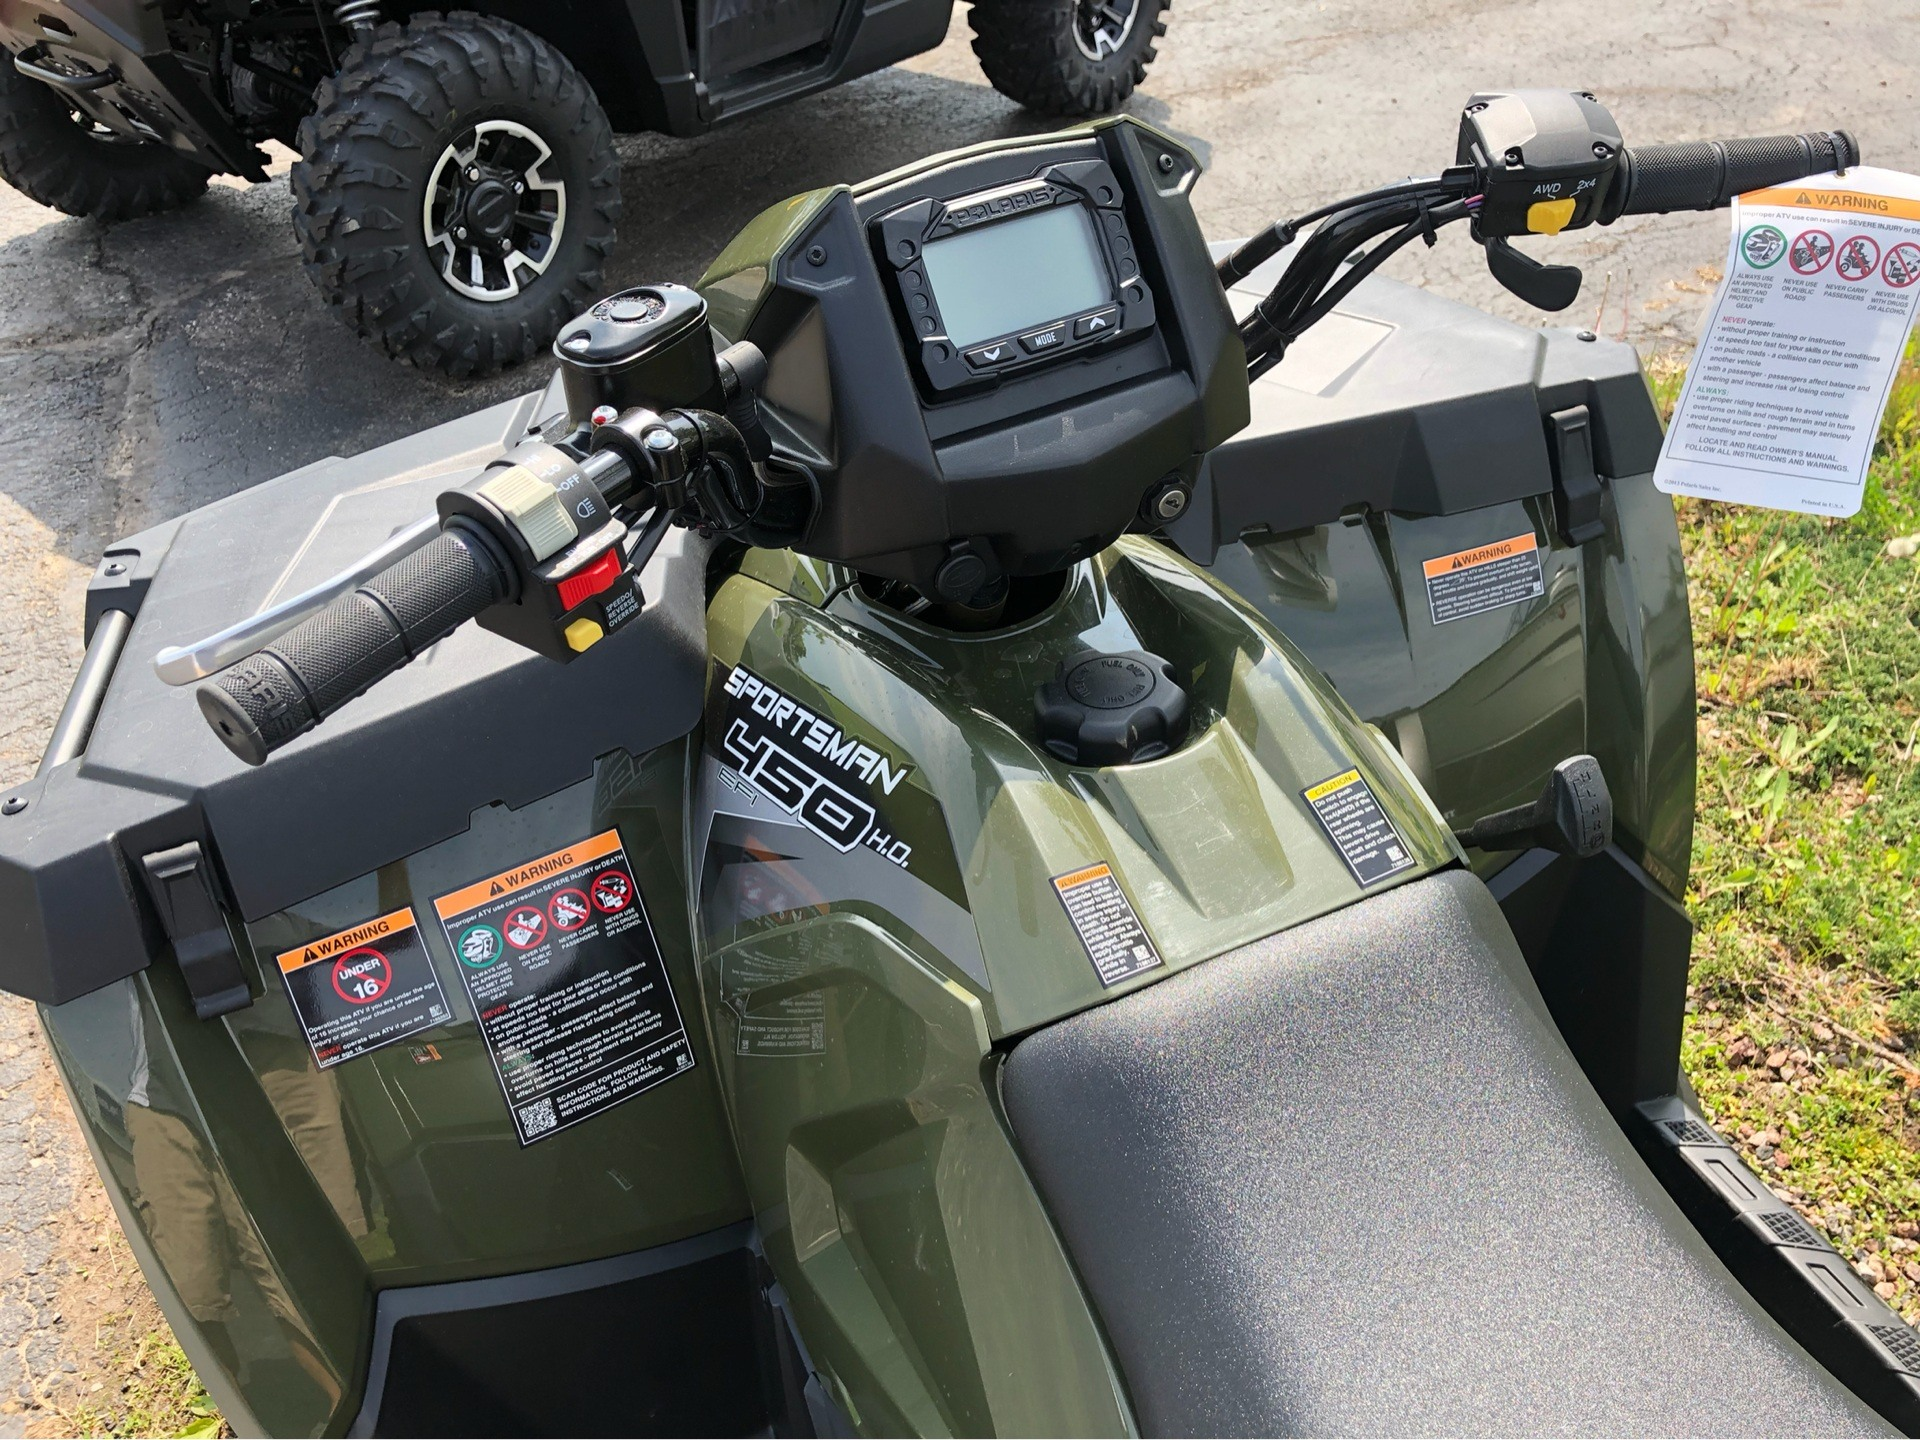 2019 Polaris Sportsman 450 H.O. in Appleton, Wisconsin - Photo 3